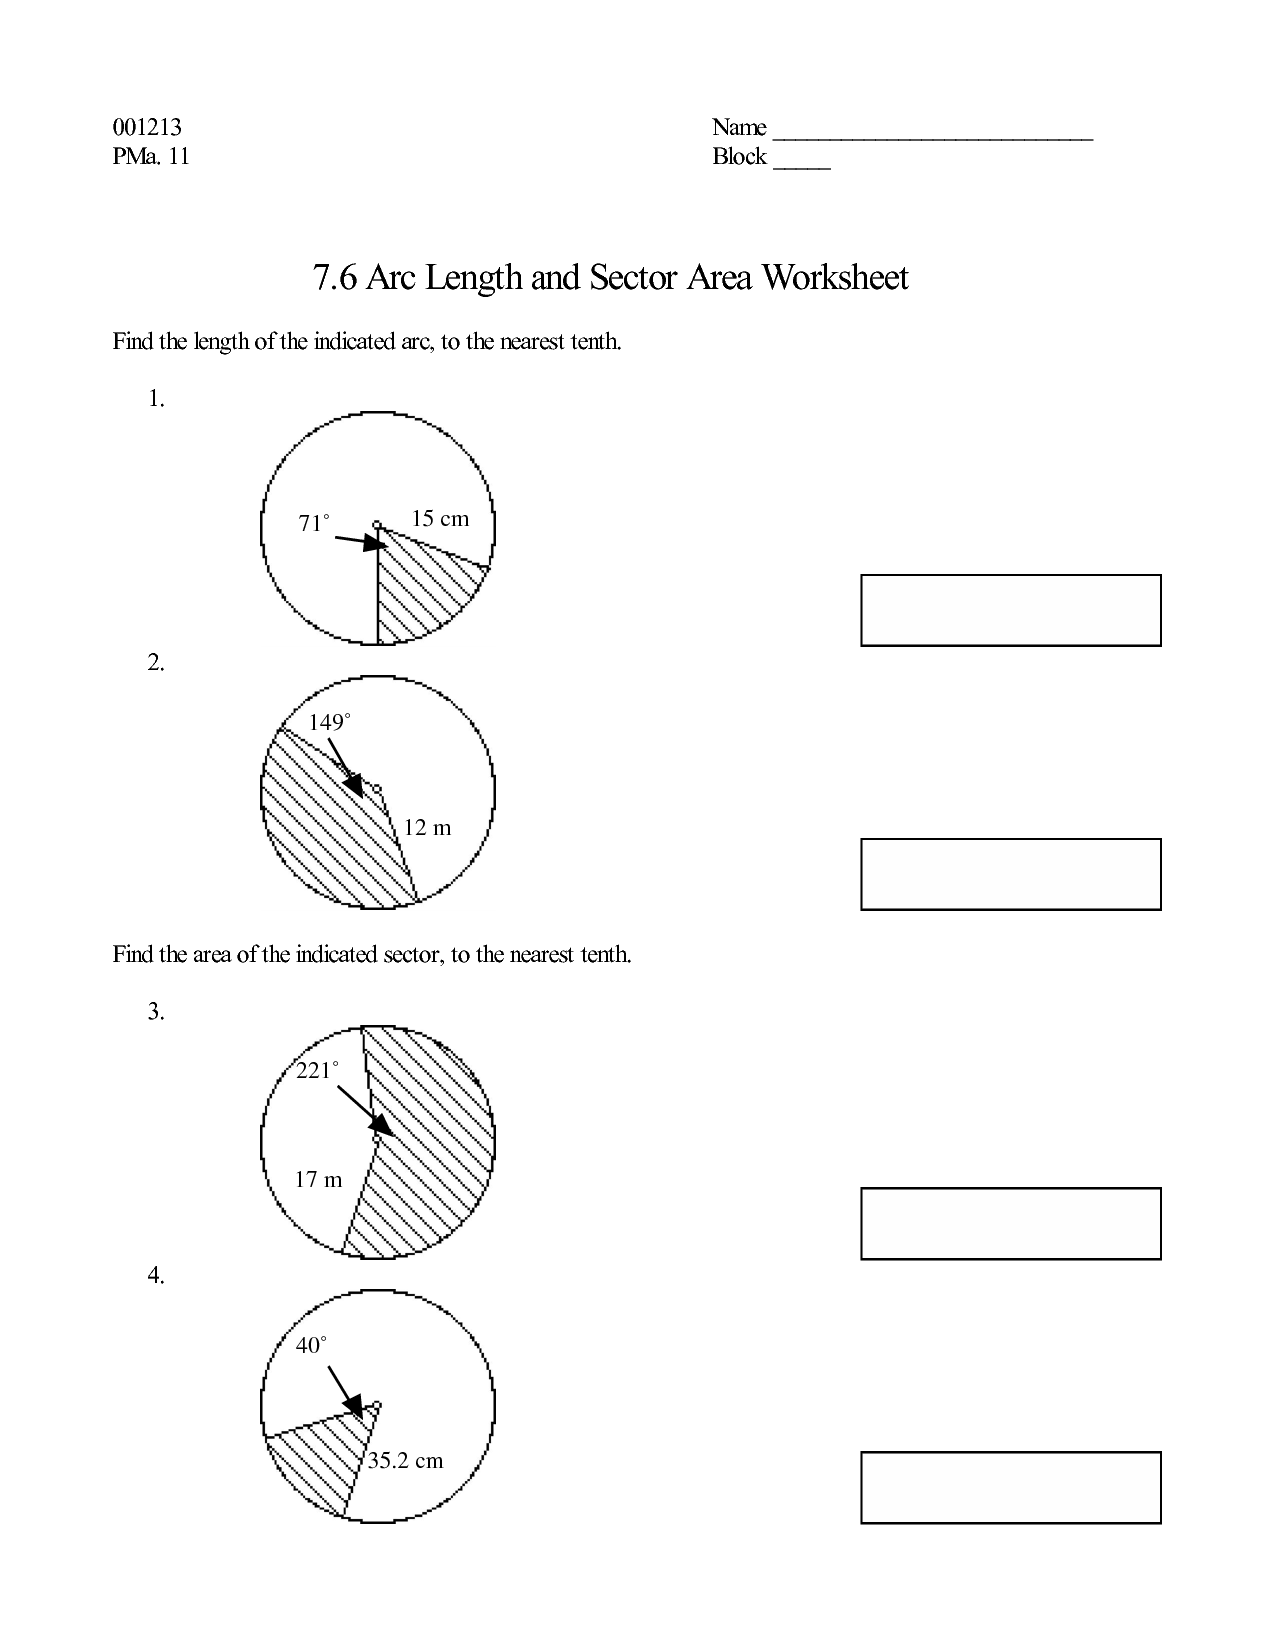 Worksheets. Arc Length And Sector Area Worksheet